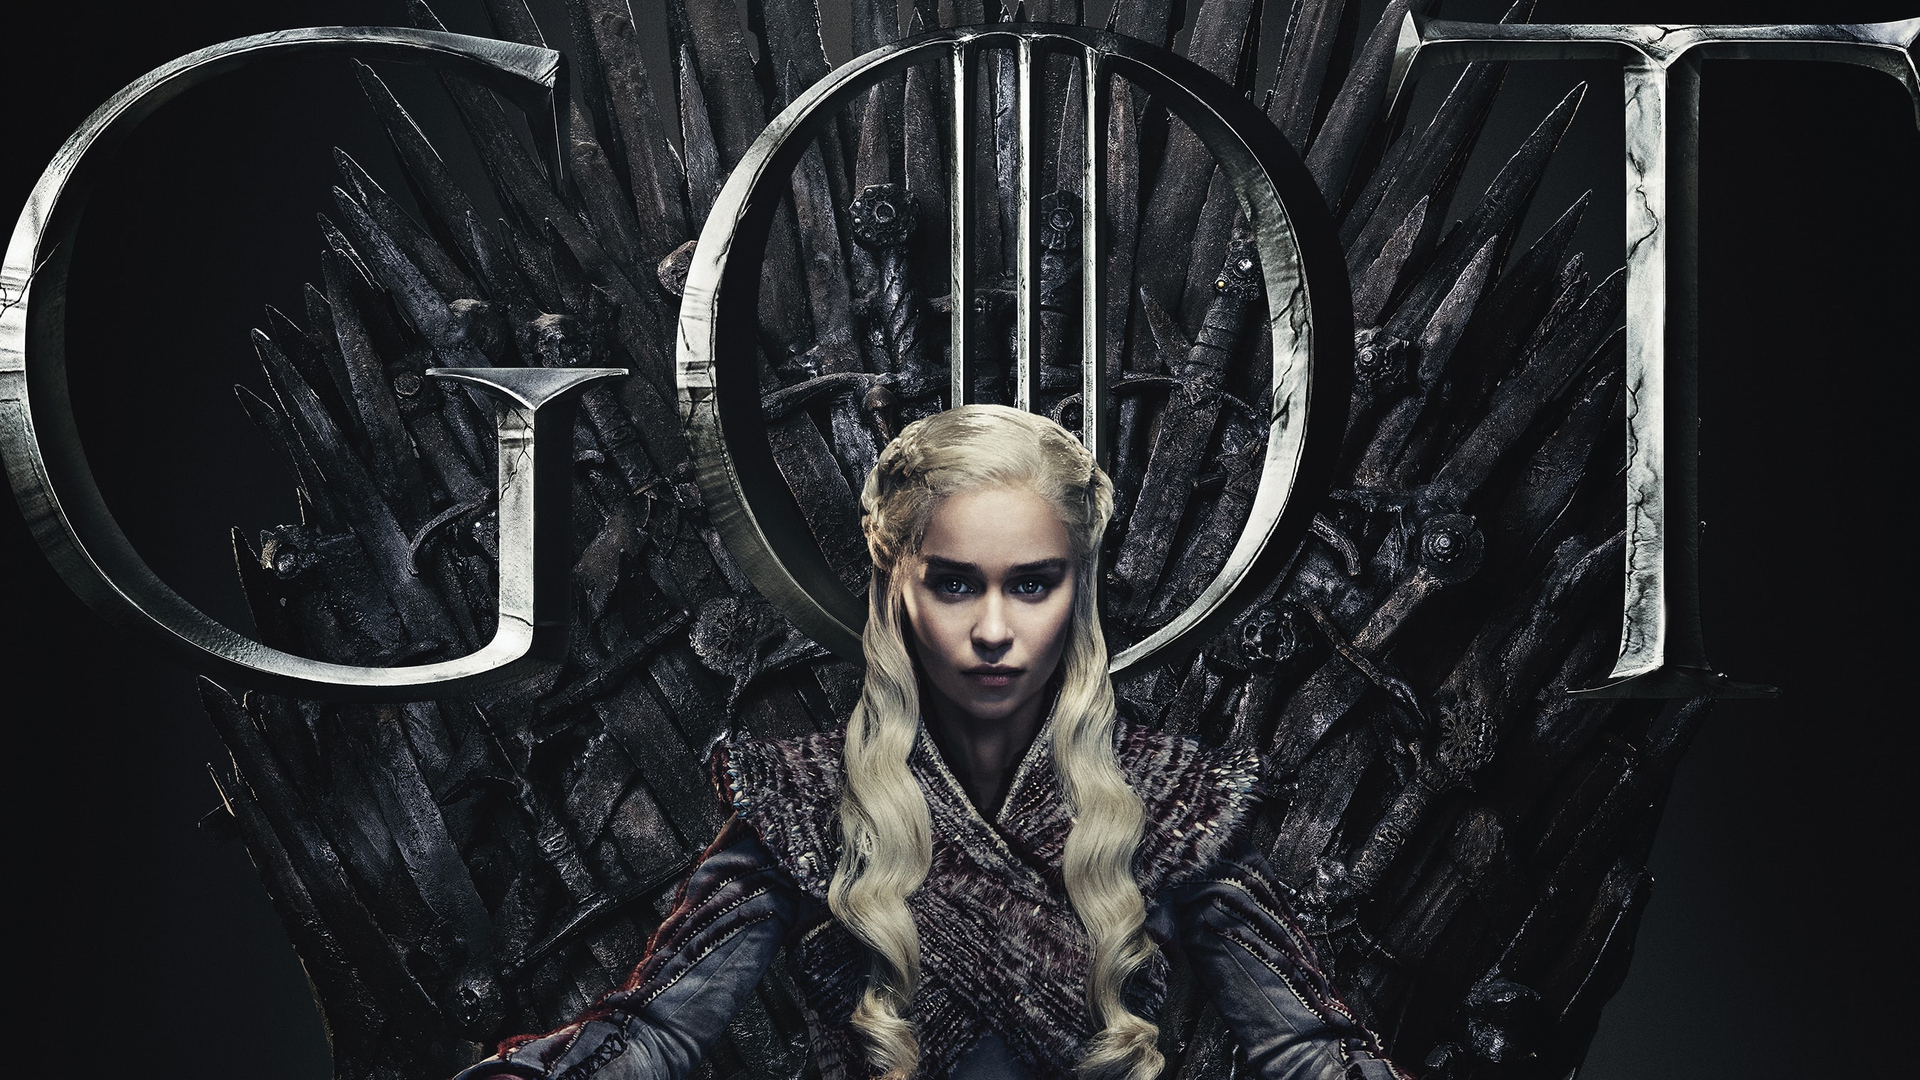 1920x1080 Daenerys Targaryen Game Of Thrones Season 8 Poster